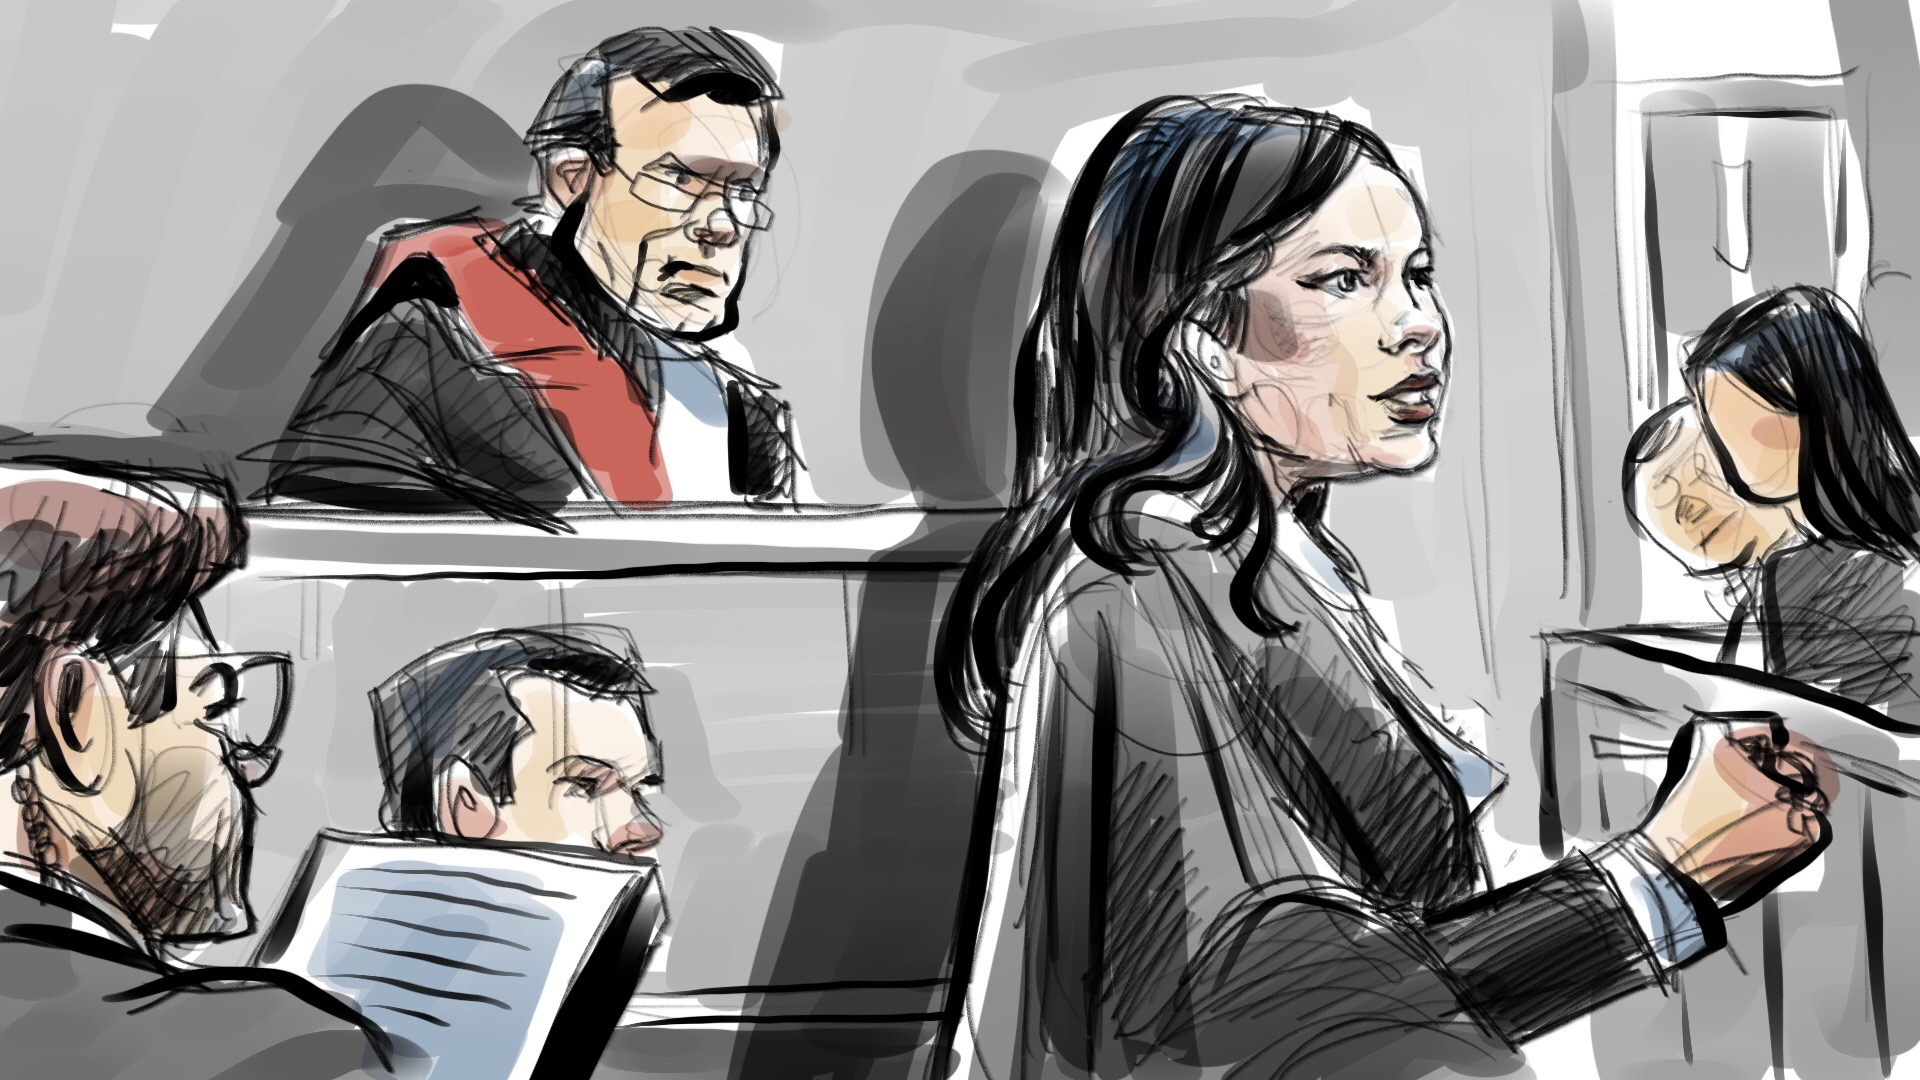 Crown says Laura's last footprint was in company of accused